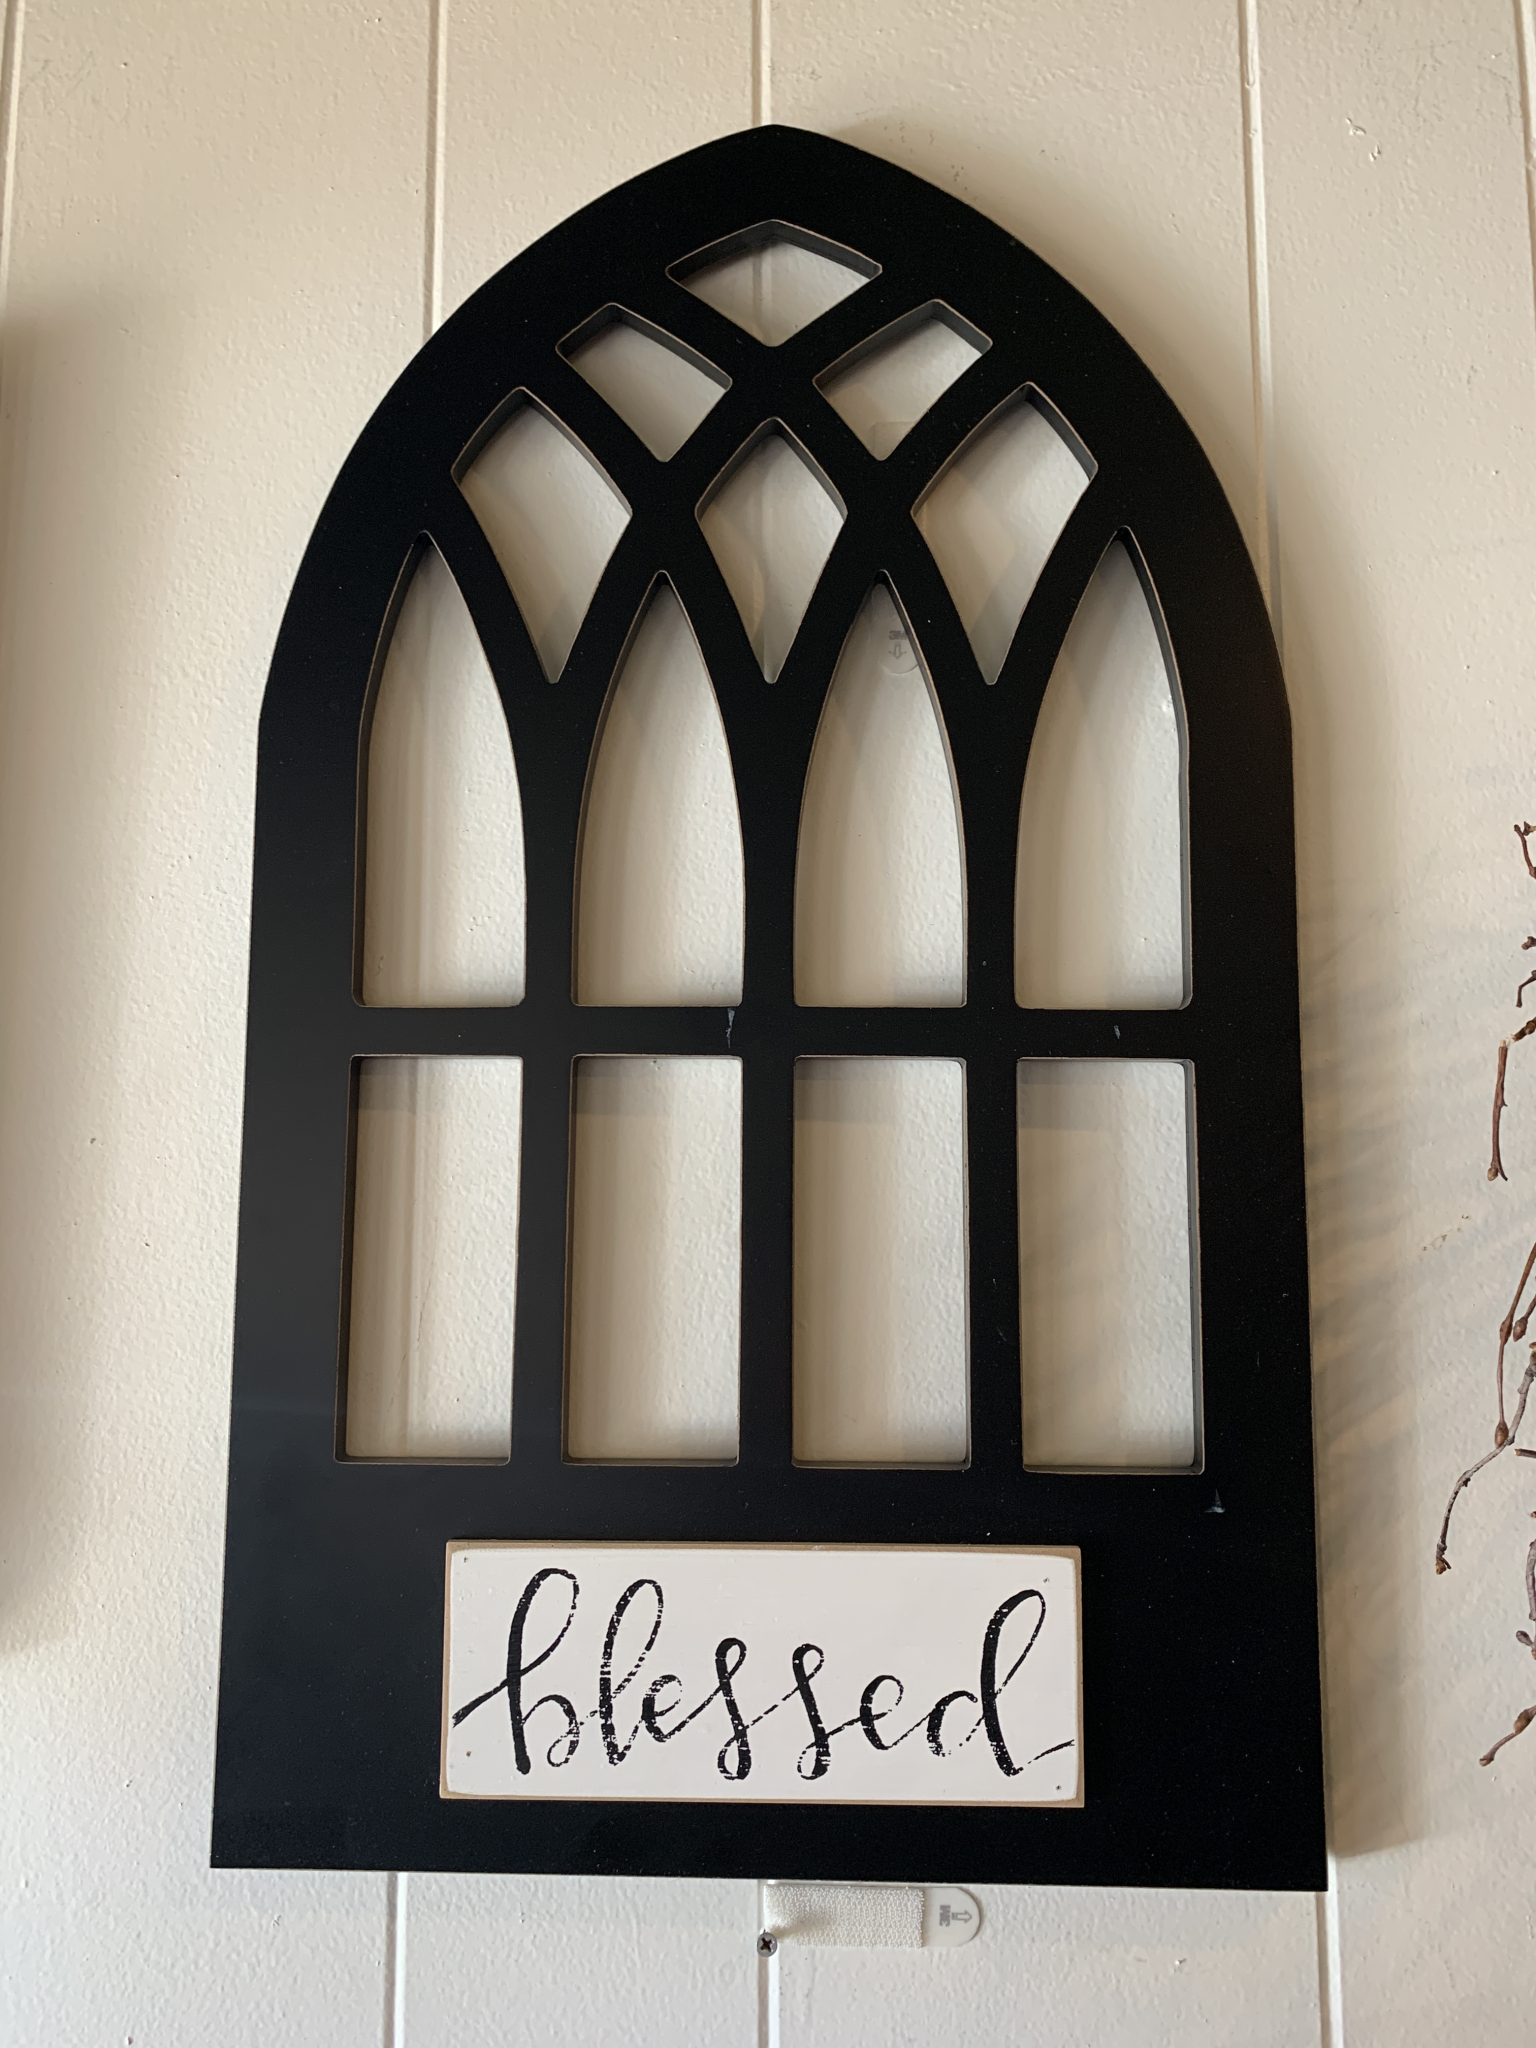 Blessed Window Frame 683731320335